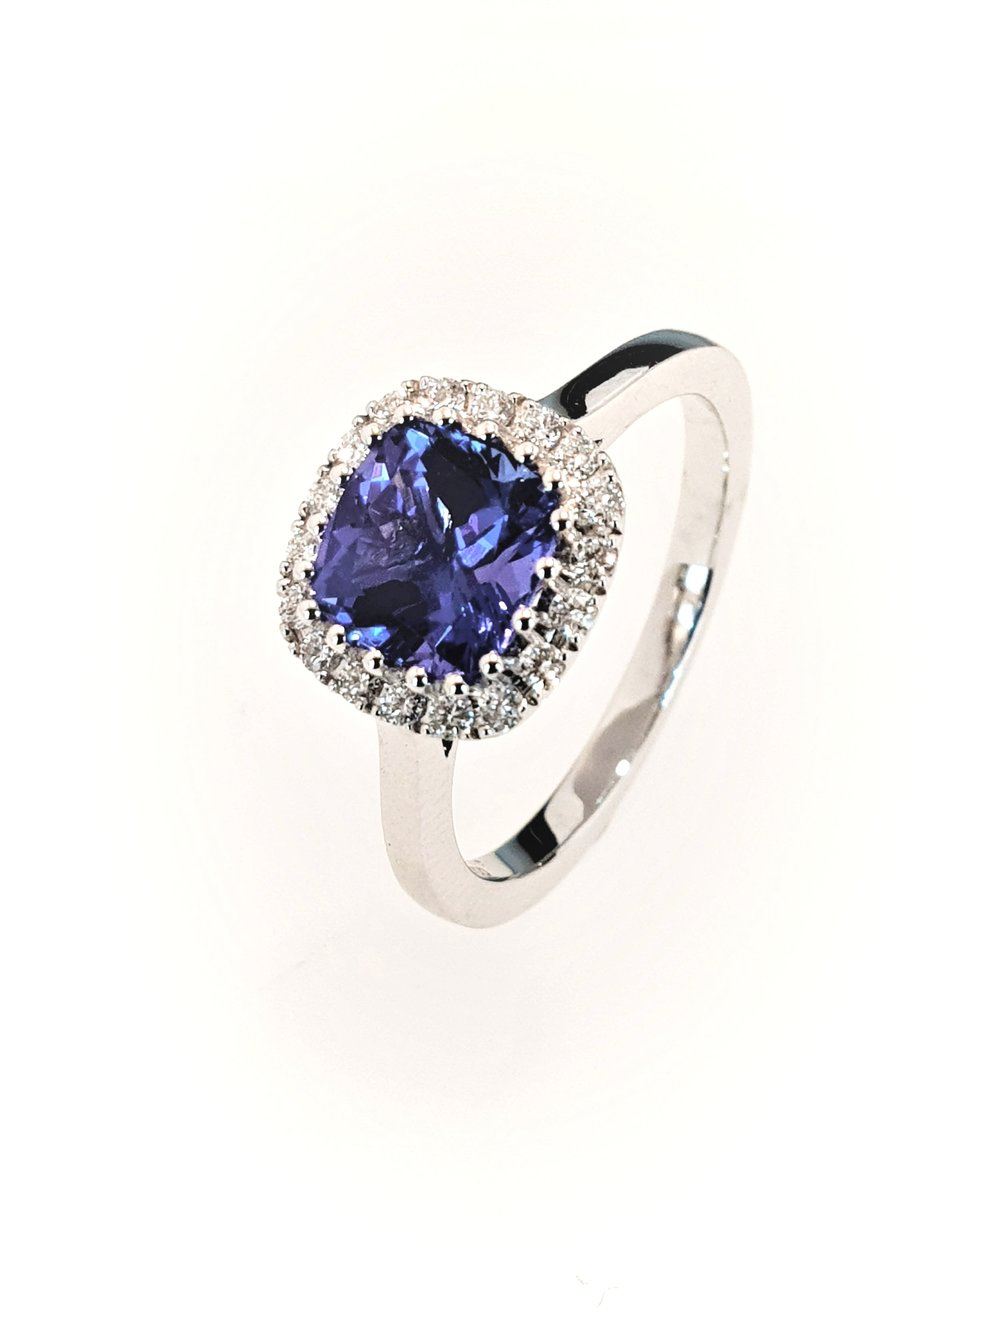 18ct White Gold Tanzinite(1.40ct) & Diamond Ring  Diamond: .19ct, G, Si1  Stock Code: N8949  £2600